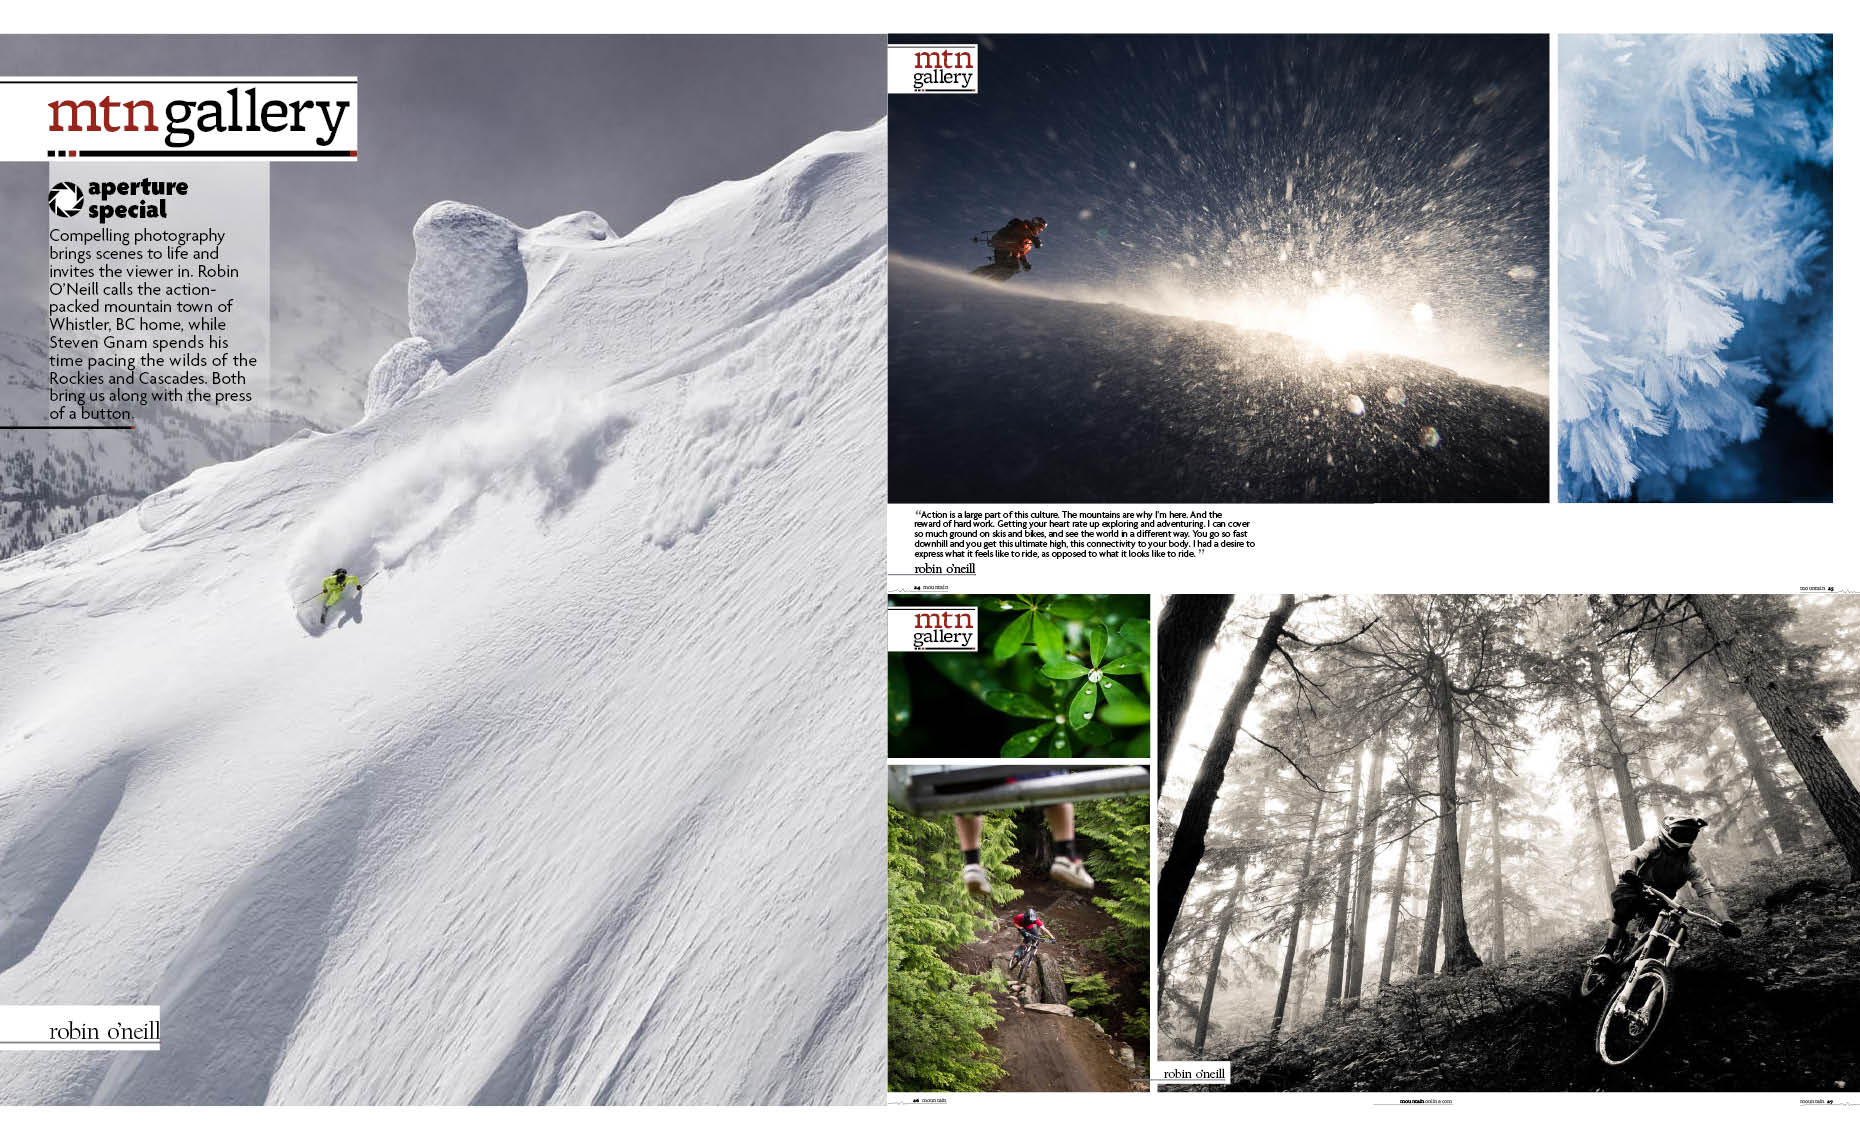 Ski magazine article by whistler photographer